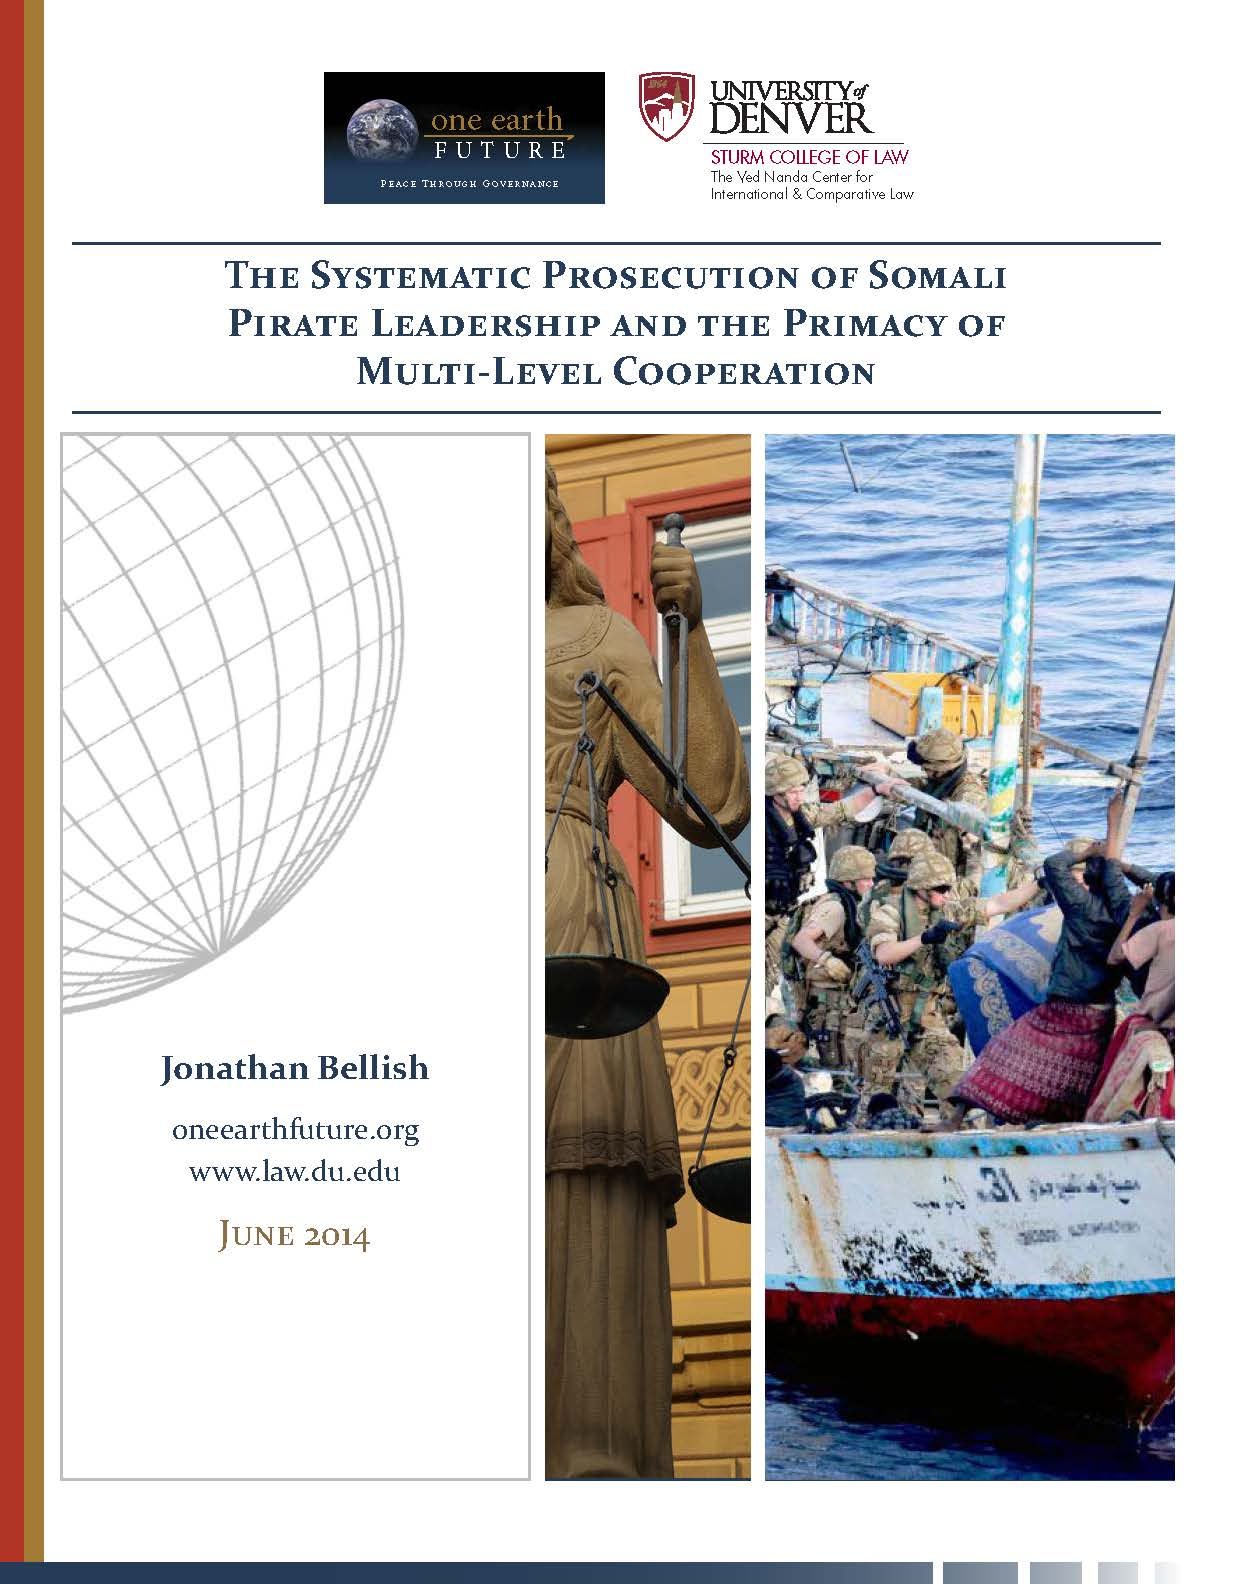 Systematic Prosecution of Somali Pirate Leadership and the Primacy of Multi-Level Cooperation